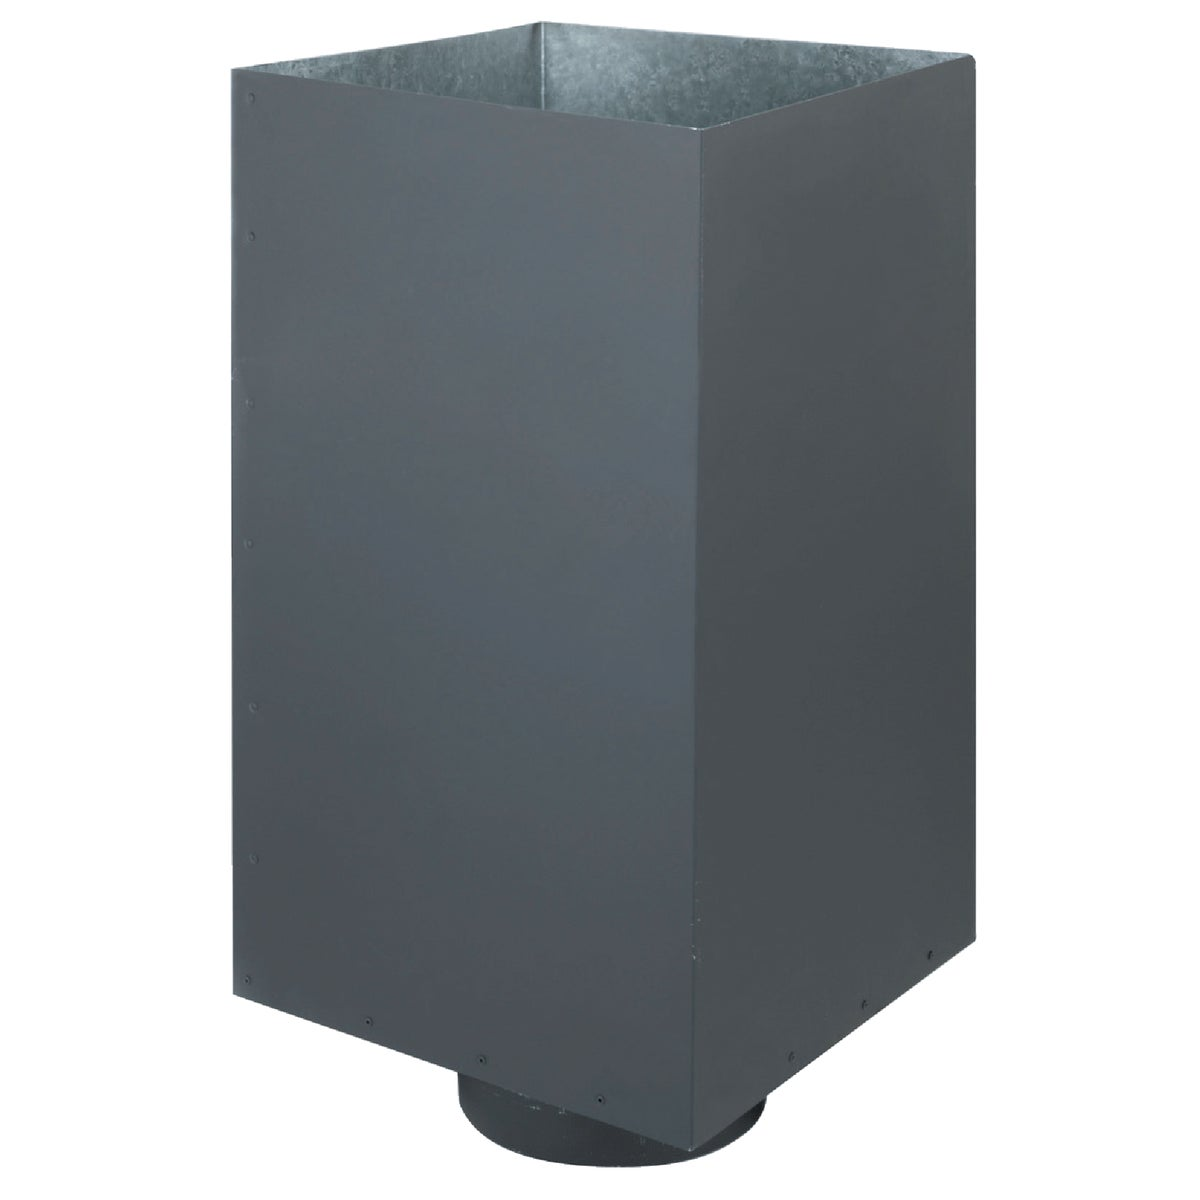 "6"" CHIMNEY BOX SUPPORT - 6T-SB by Selkirk Corporation"